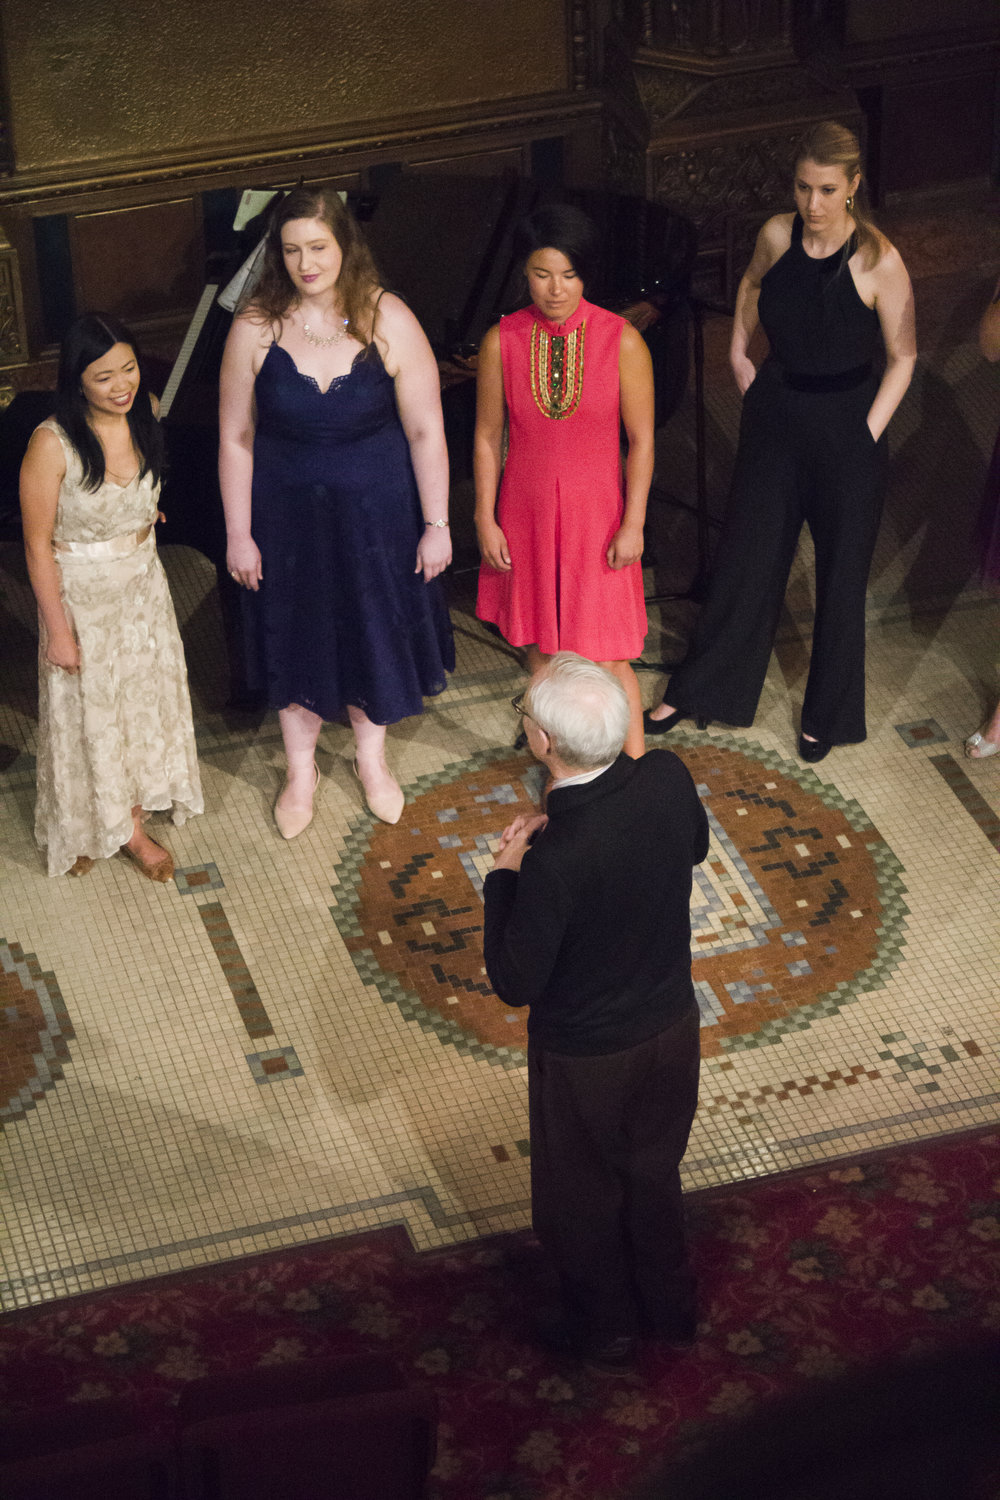 Joyce Yin, Mary Kathryn Monday, Brittany Fowler, Tara Gruszkiewicz, and William Lewis at Far and Near. June 2018. Photo credit: Laura Mitchell